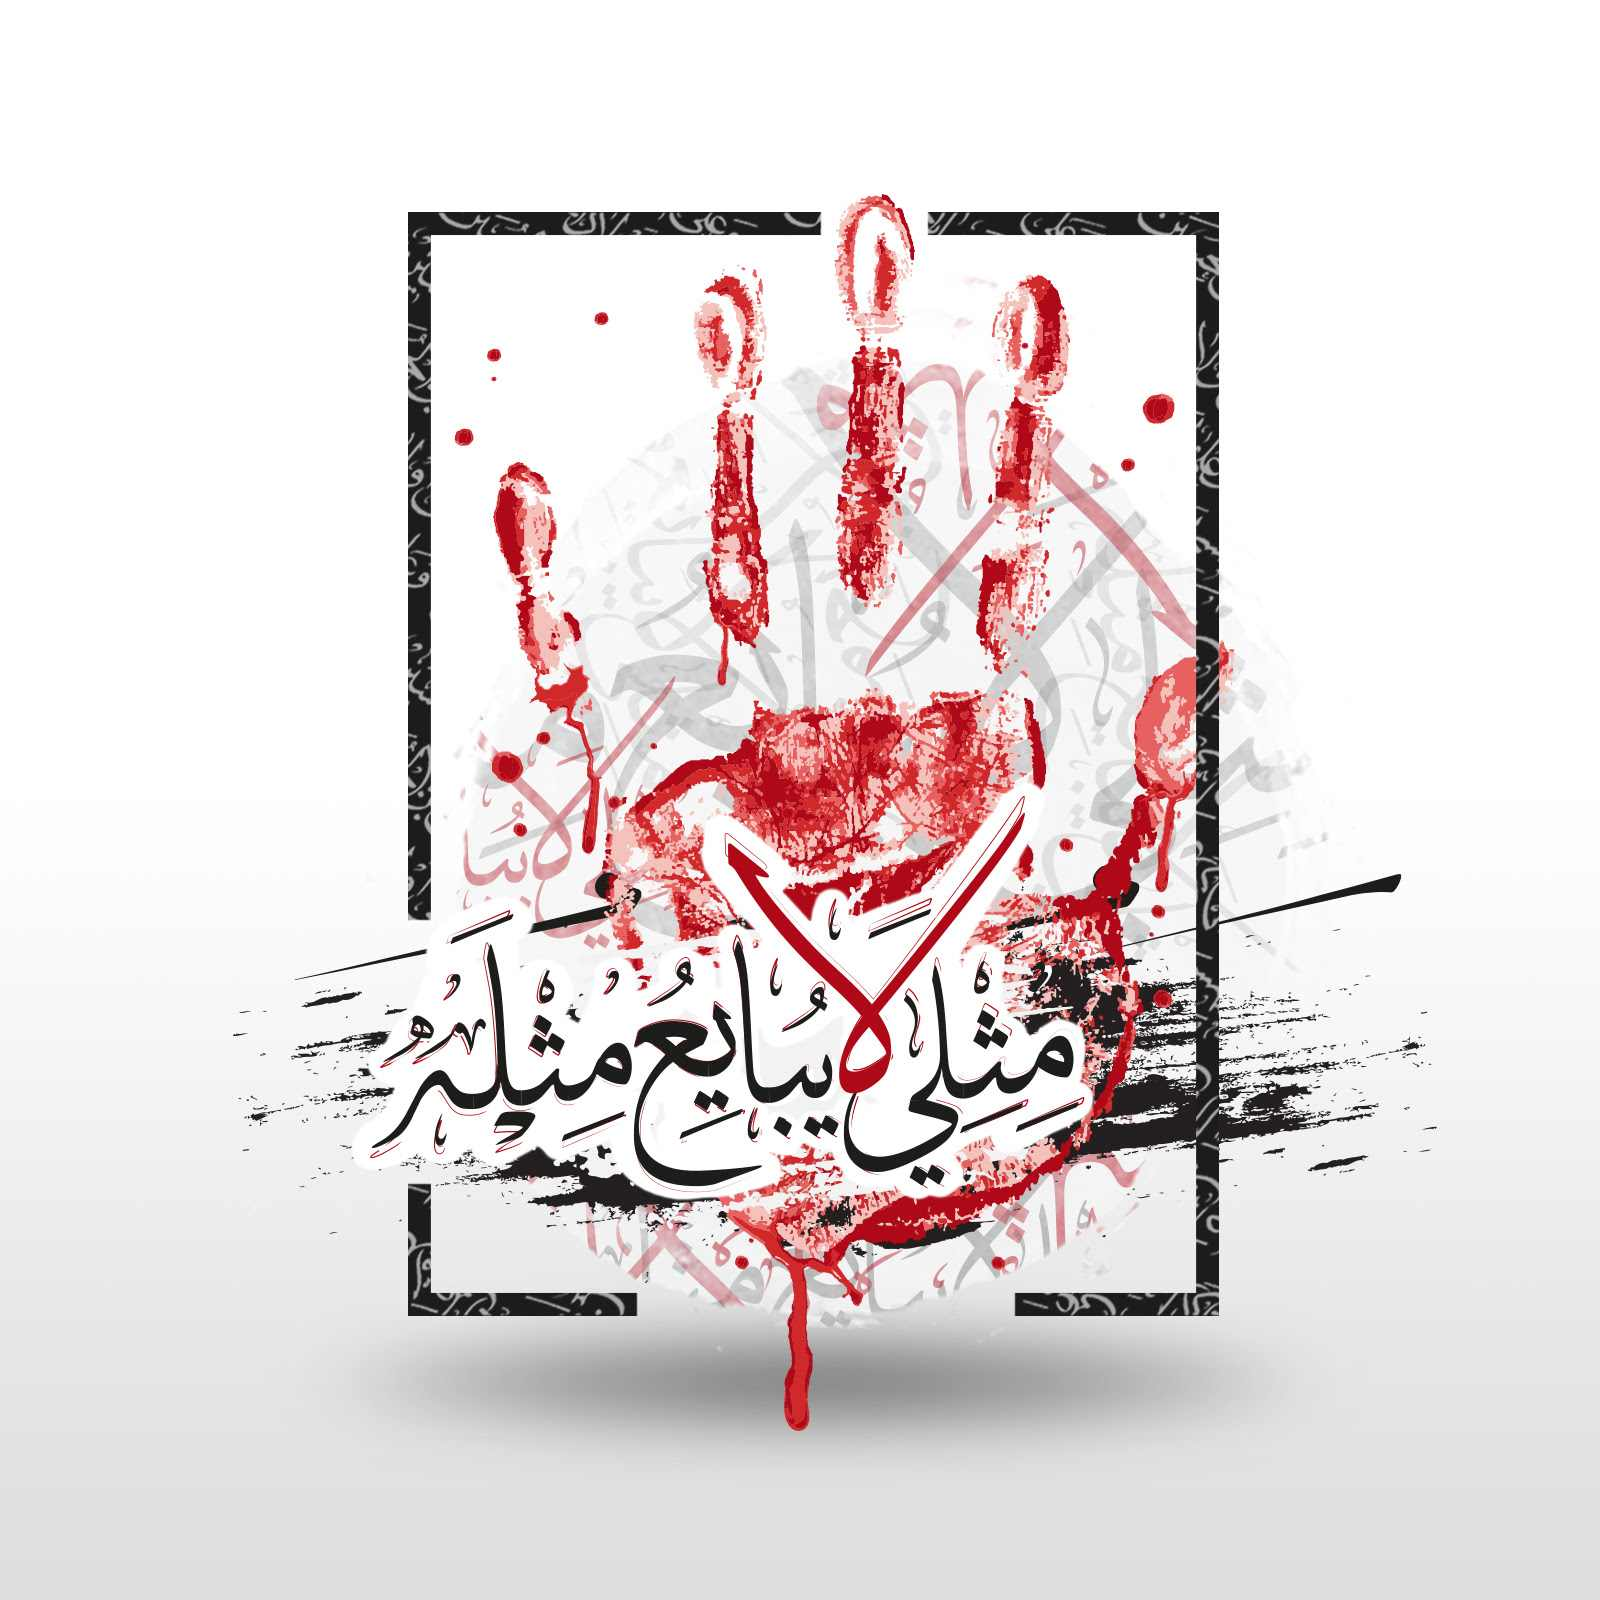 Coalition of 14Feb youth revolution launches its Ashura slogan for 1440H